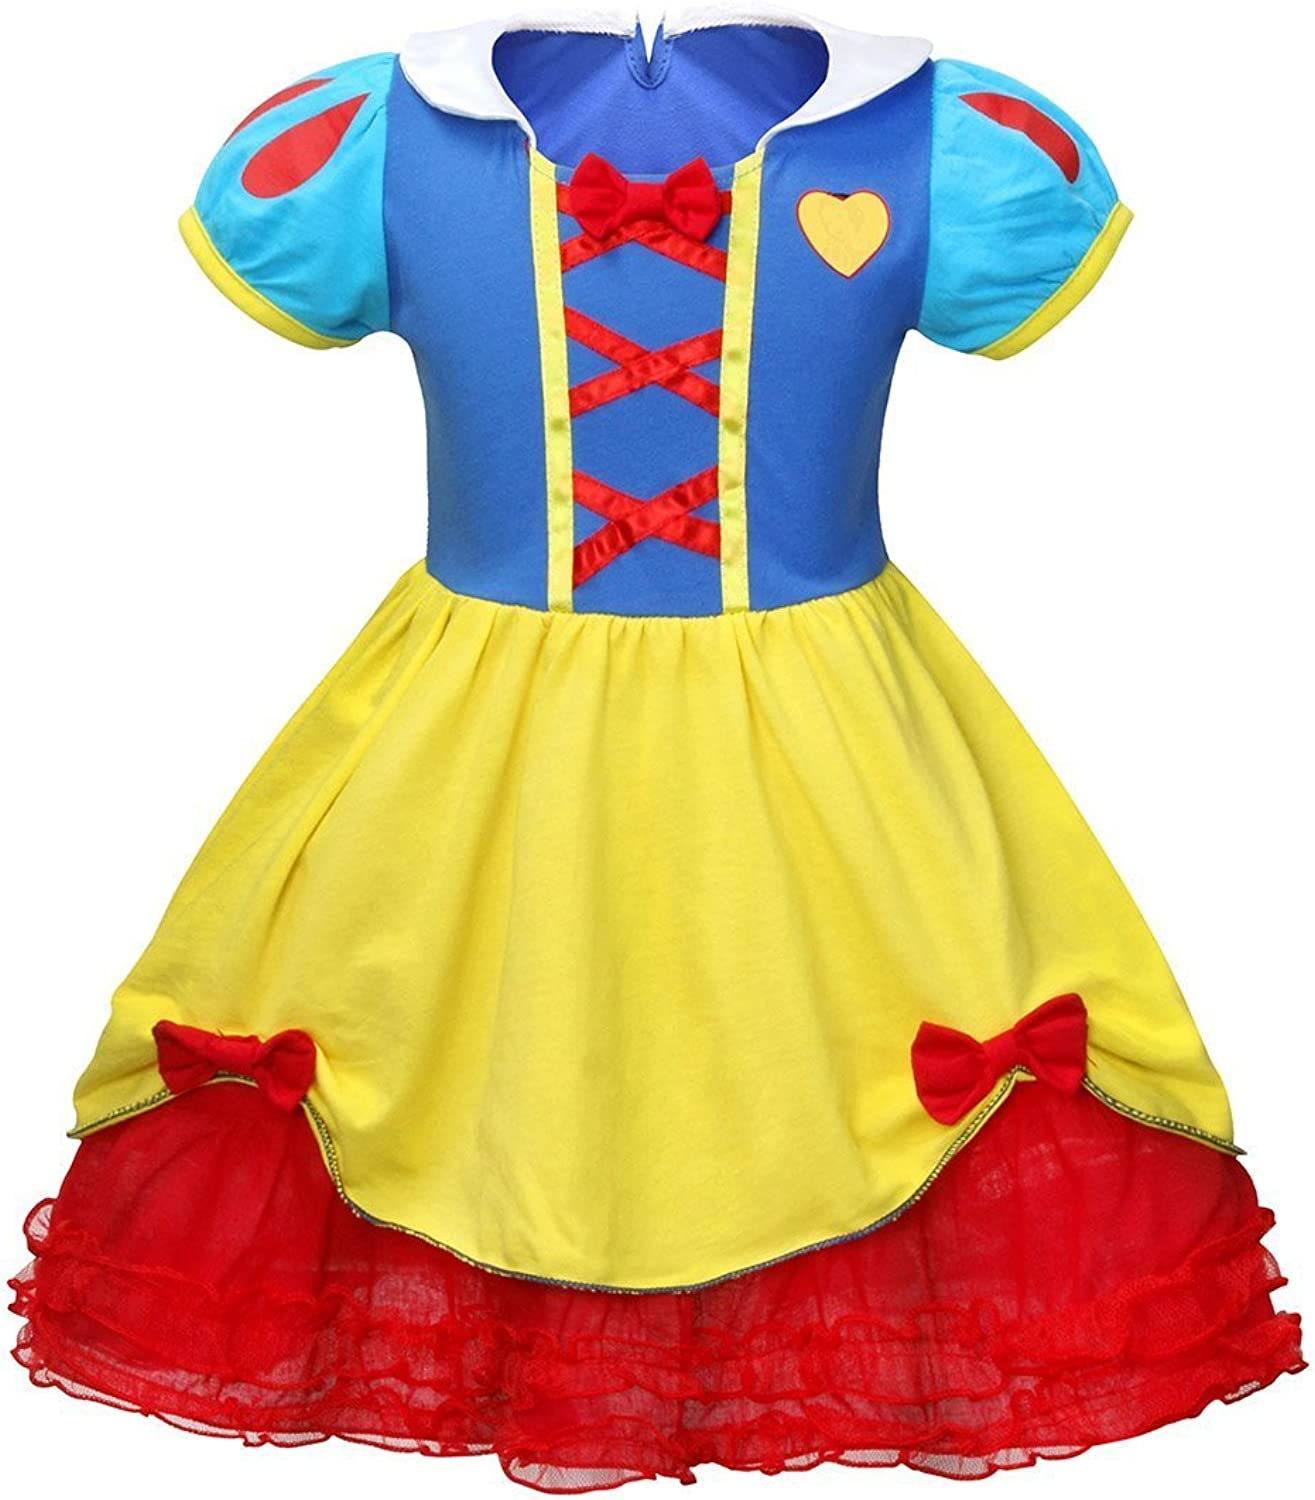 Jurebecia Girls Princess Snow White Dress up Halloween Costumes Party Dresses 16 Years